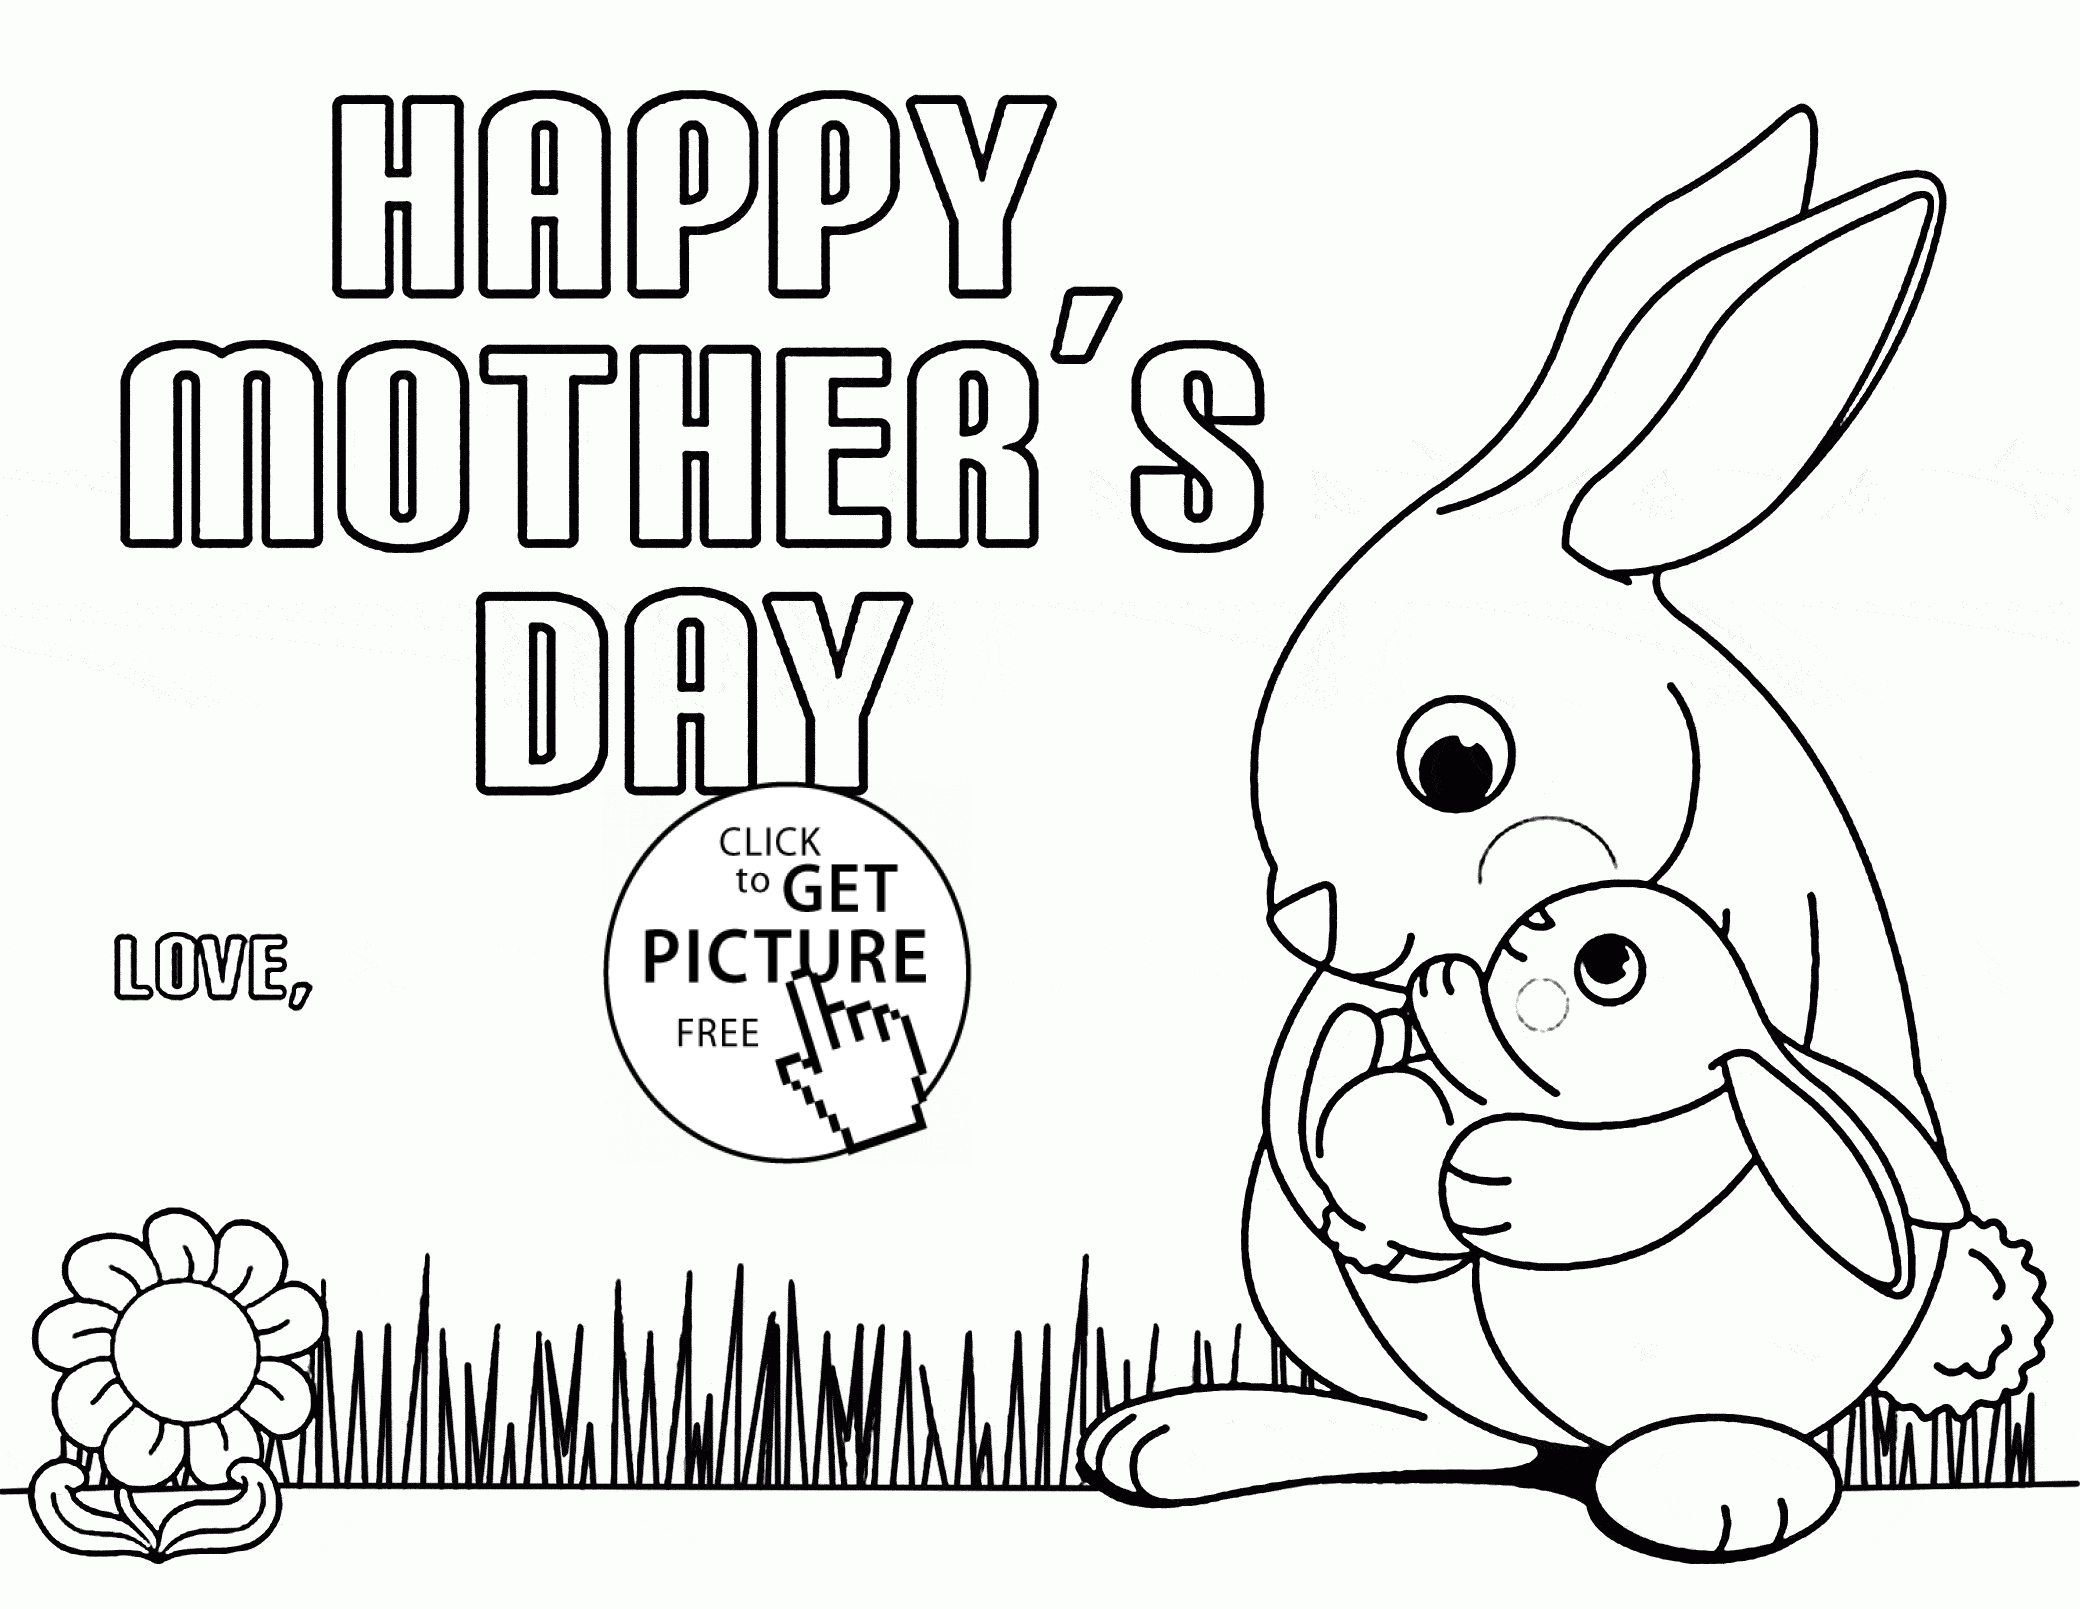 bunny coloring pages free - cute bunny for mothers day coloring page for kids coloring pages printables free